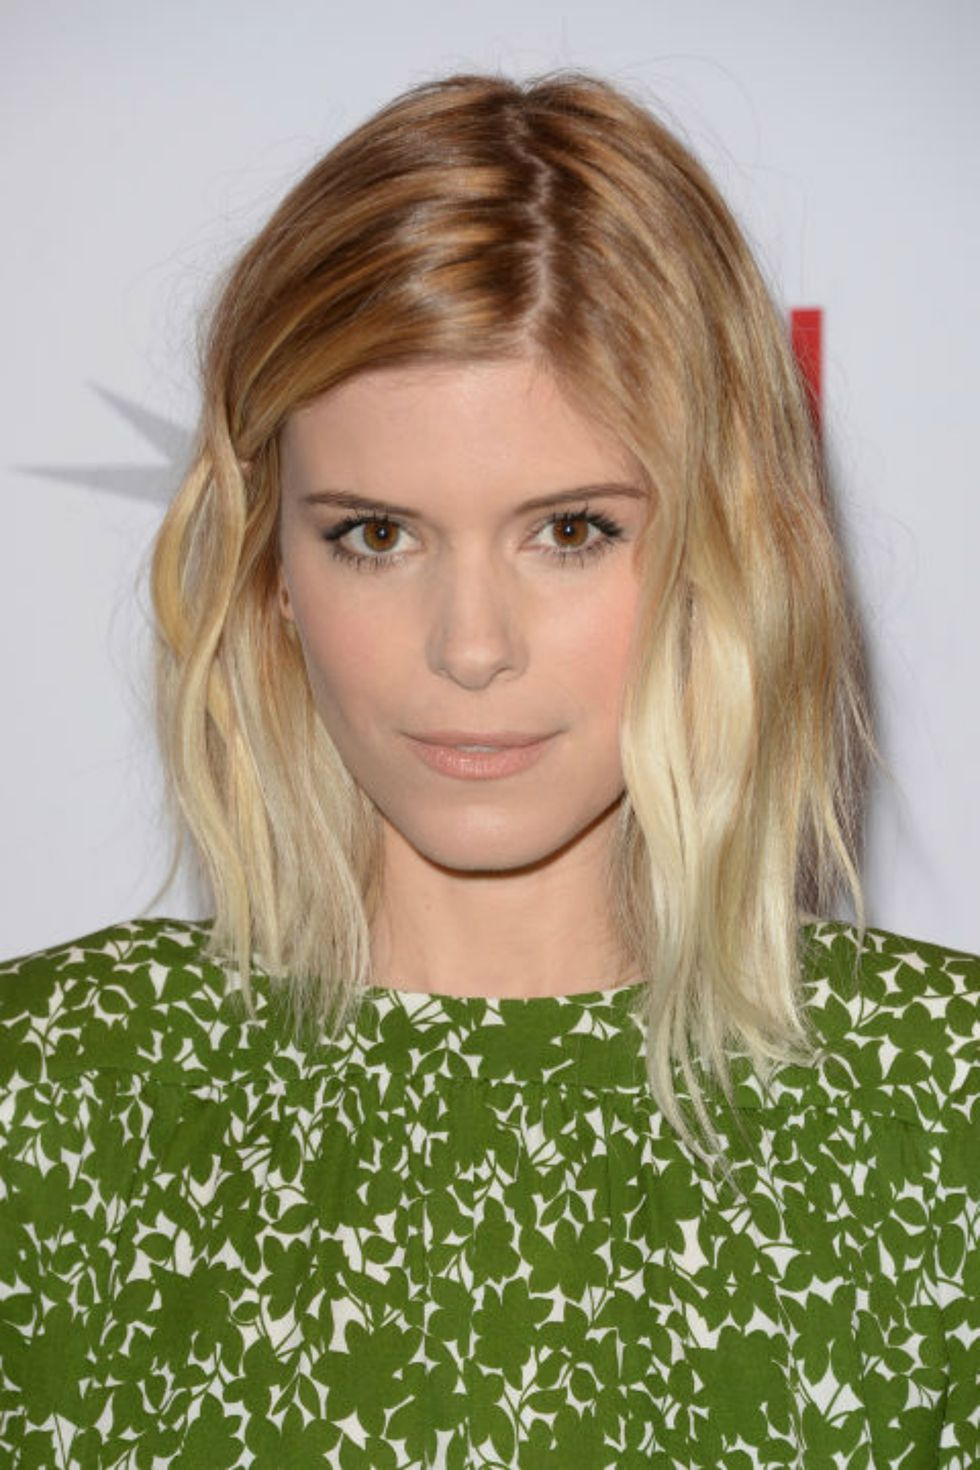 1445877298 548fcf16b3c79 Rbk Medium Length Hair Kate Mara S2